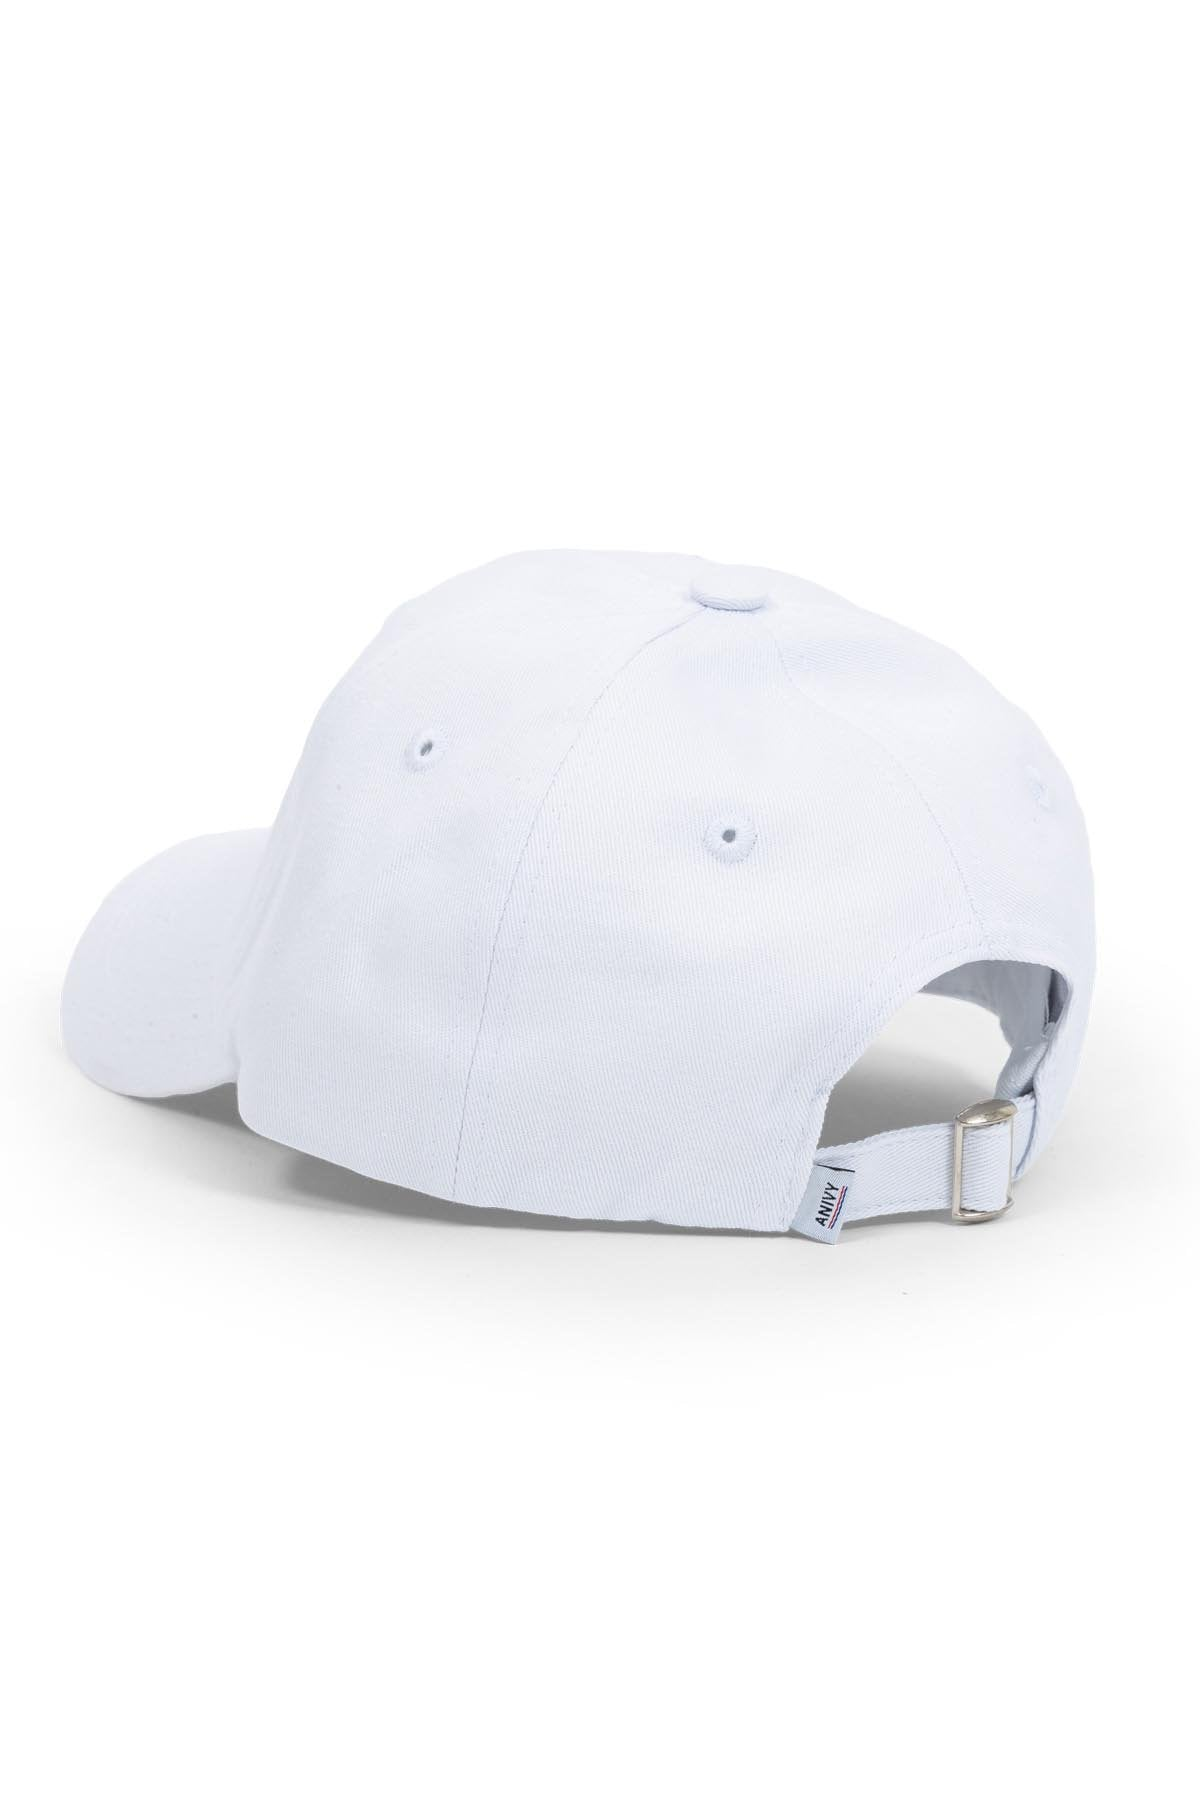 The White Yale Dad Cap